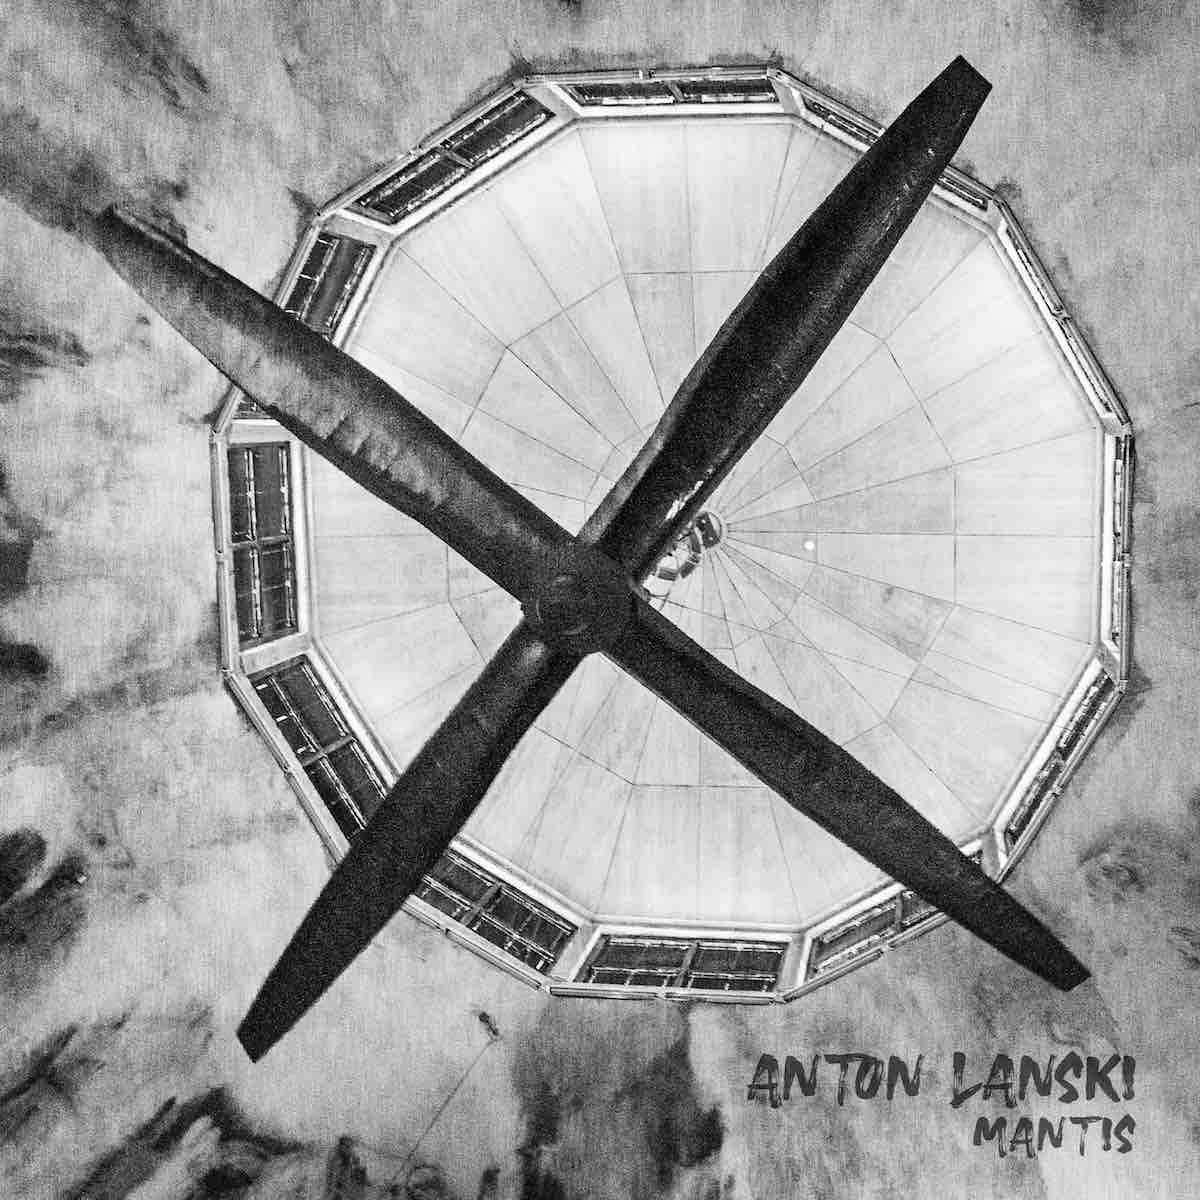 Anton Lanski – Mantis EP is out now on Gartenhaus